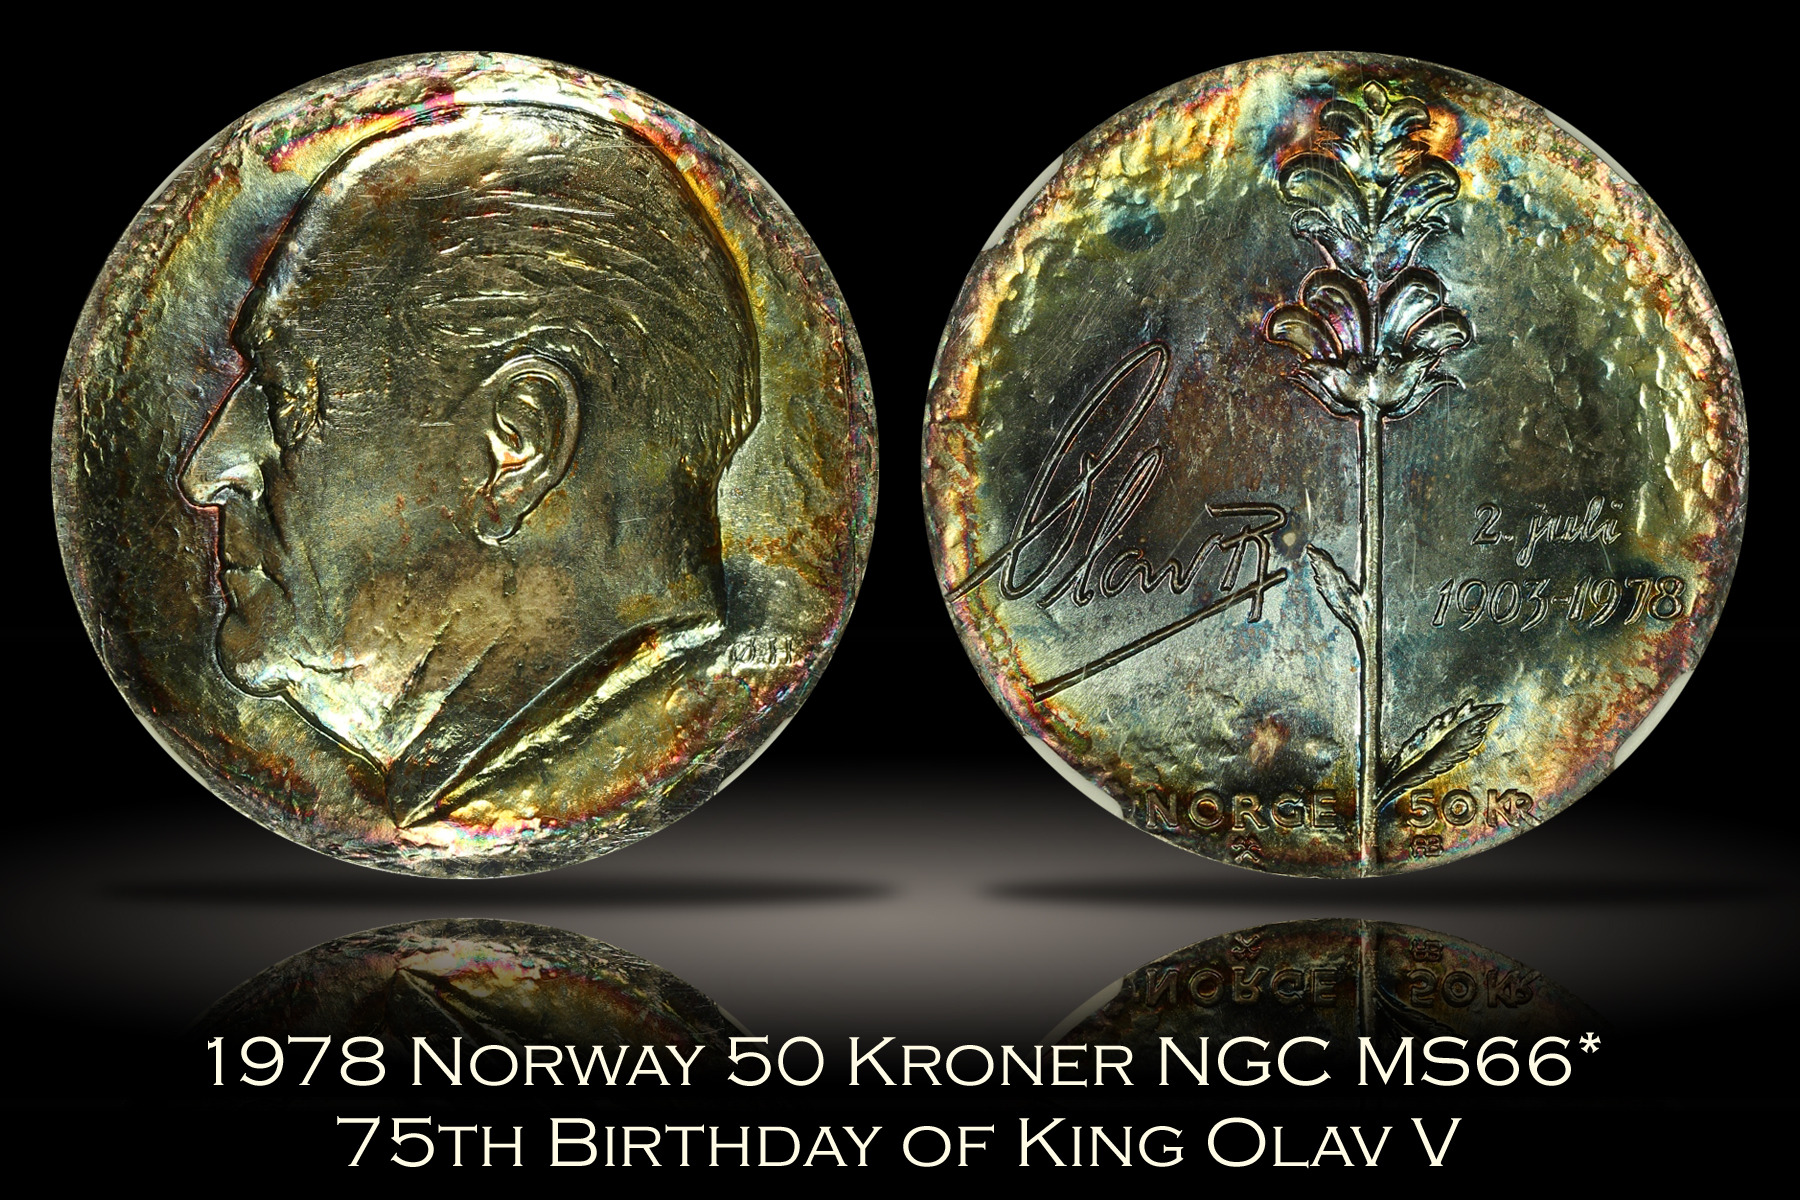 1978 Norway 50 Kroner King Olav V NGC MS66*